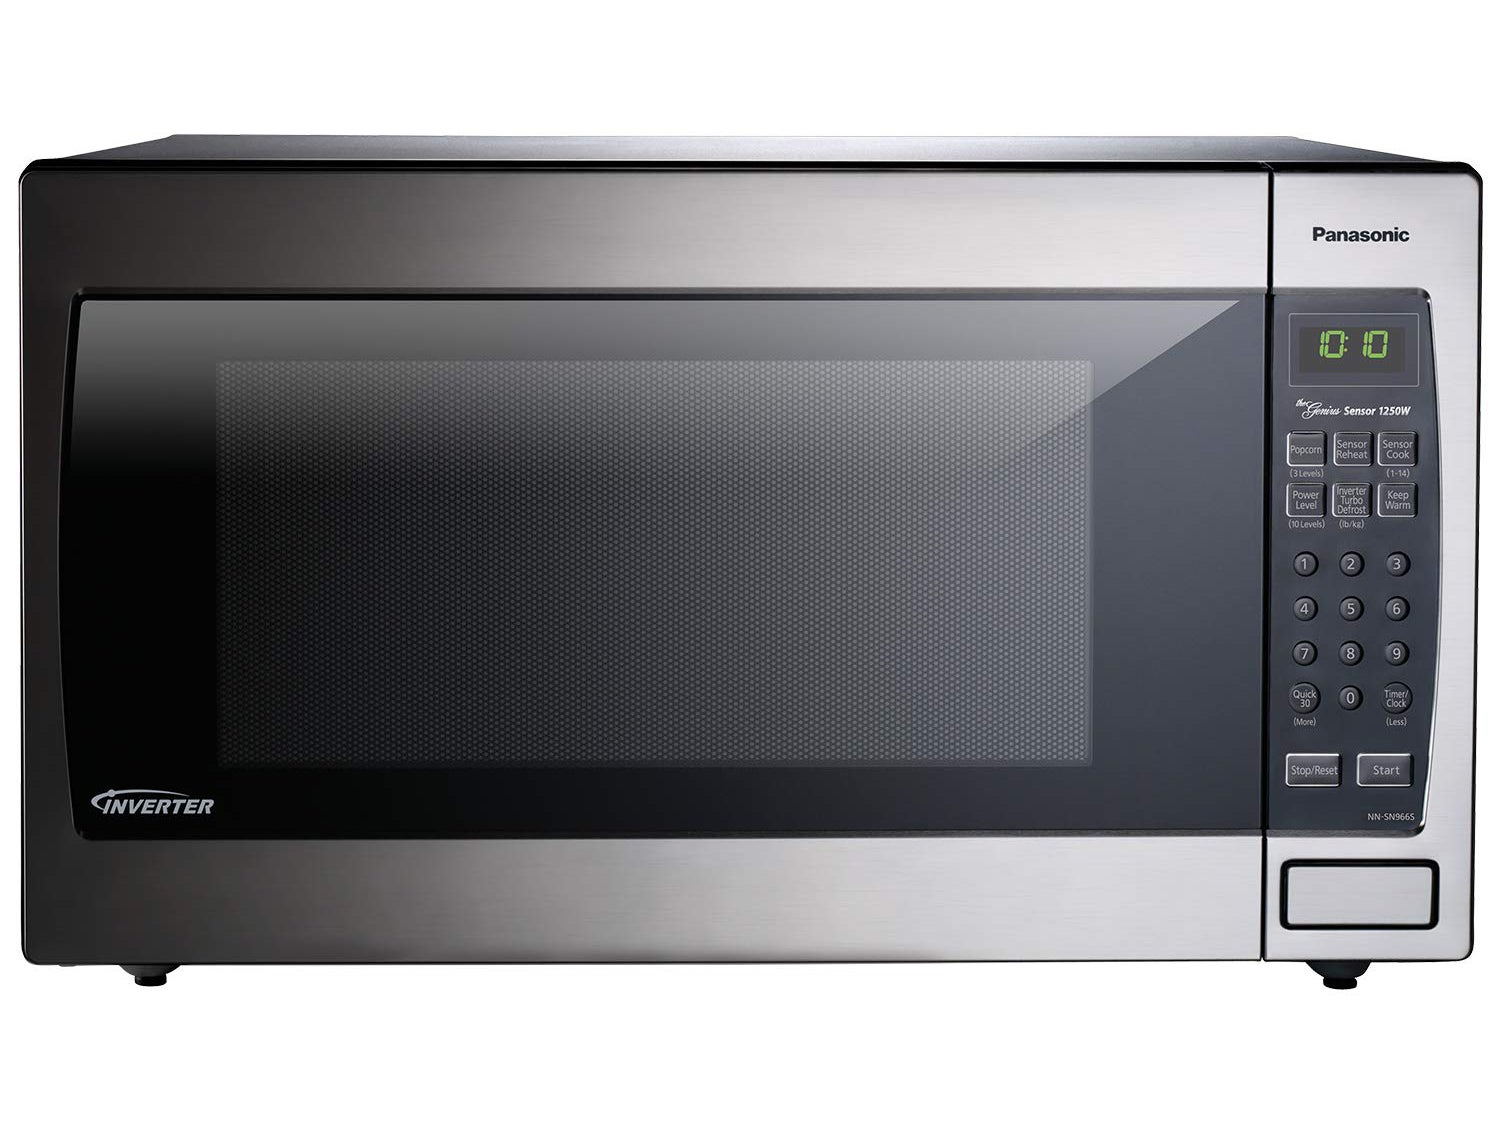 Panasonic Microwave Oven Stainless Steel Countertop/Built-In with Inverter Technology and Genius Sensor, 2.2 Cubic Foot